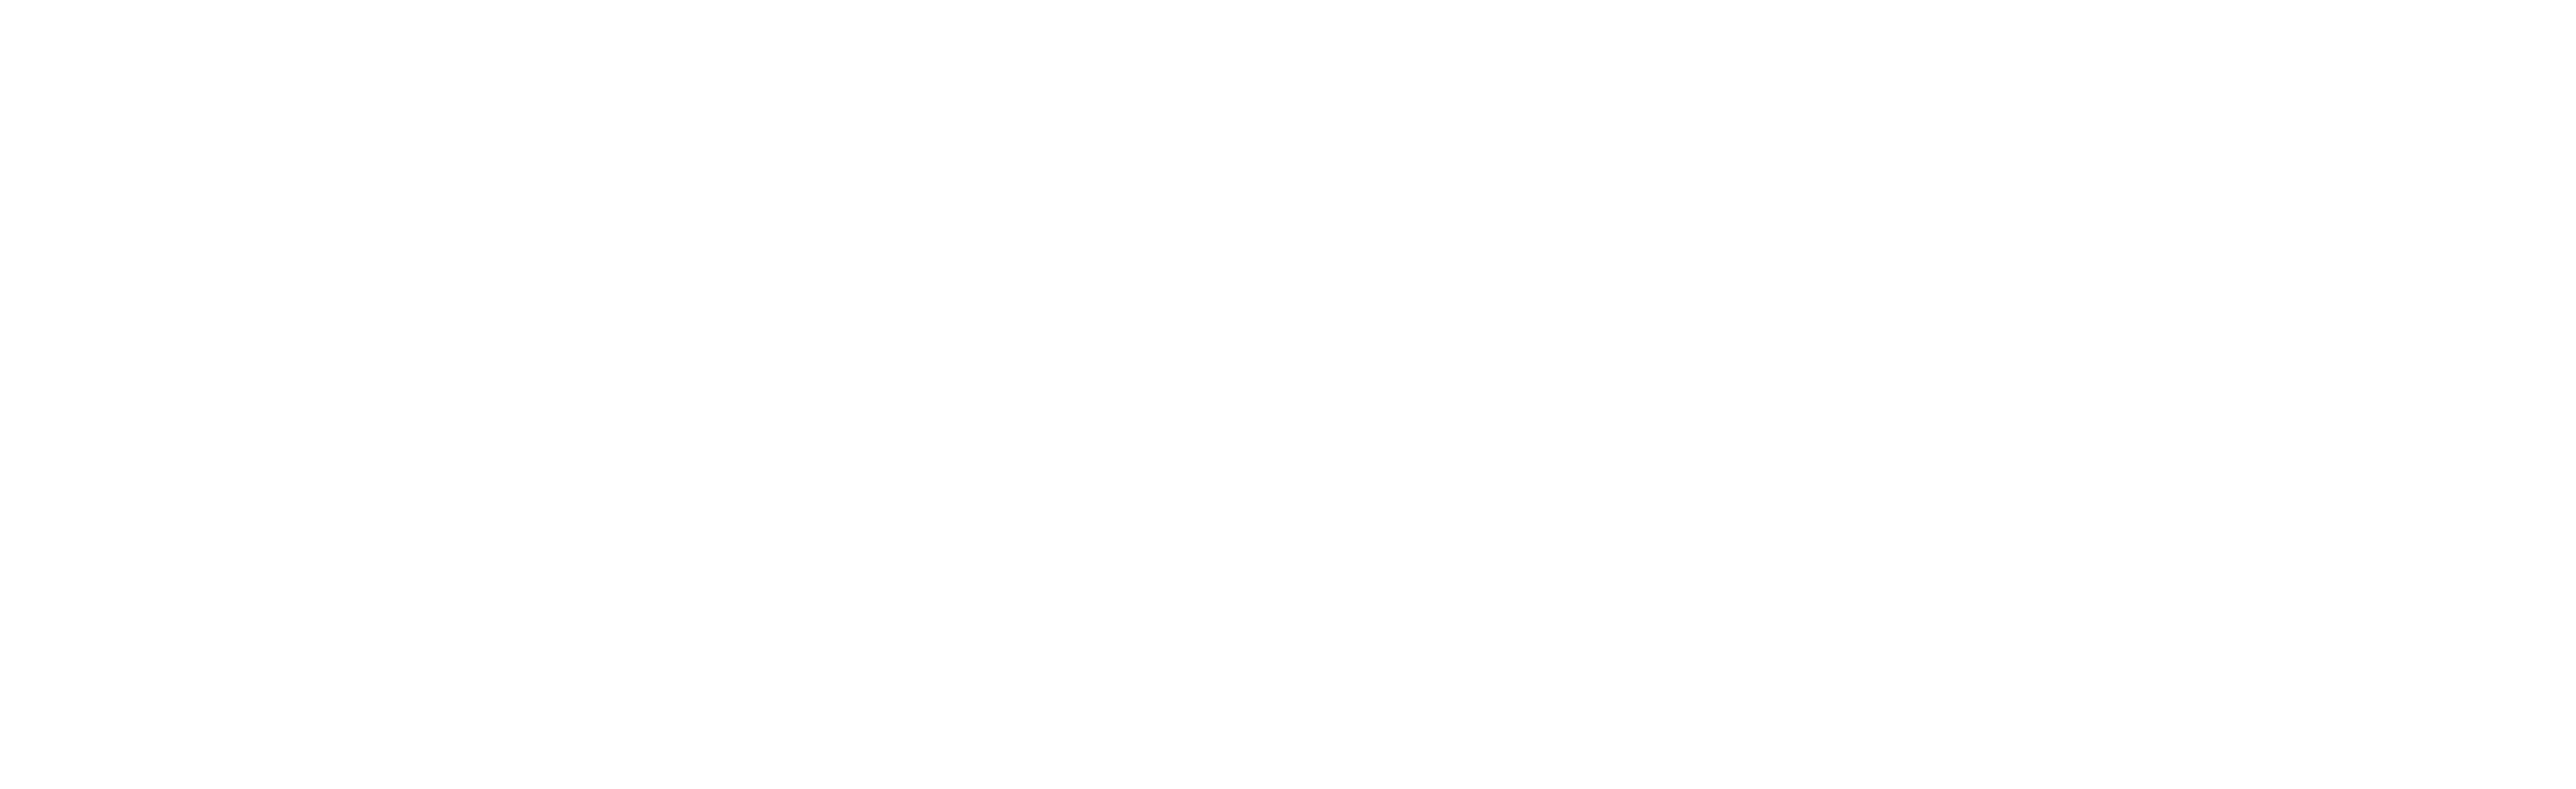 MetroWest Christian Academy